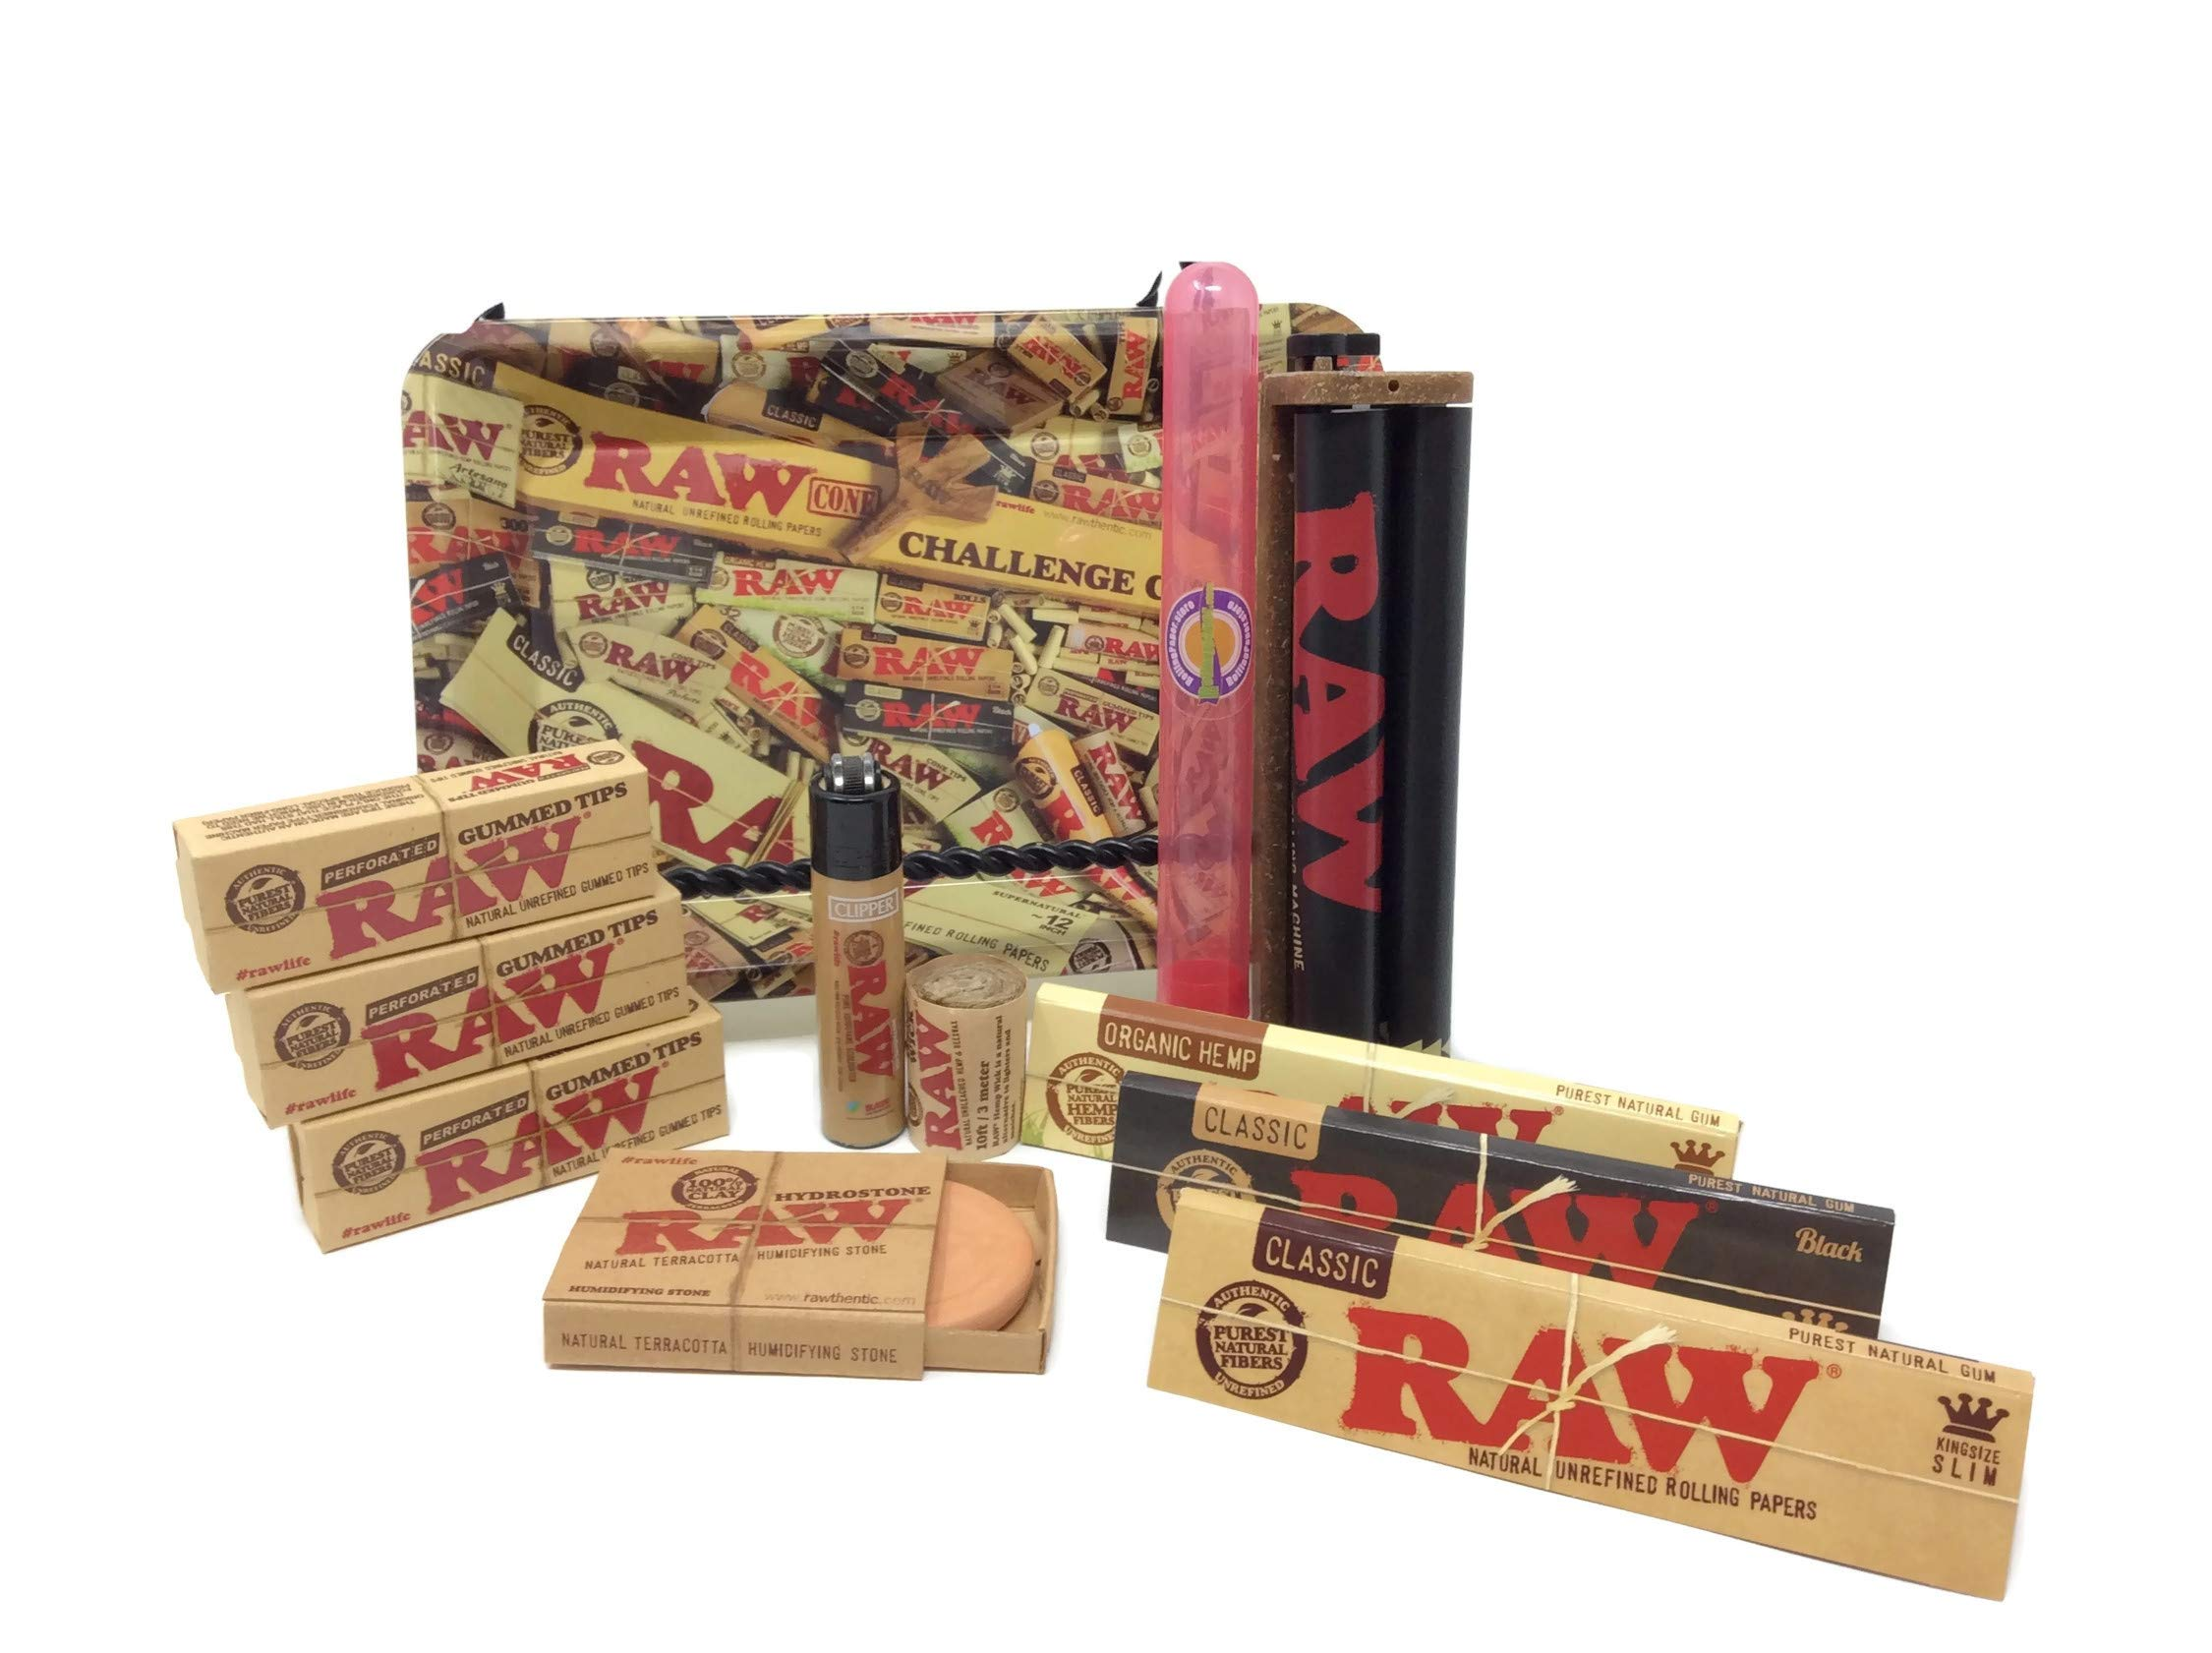 Bundle-12 Items-Raw Everything Mini Tray, Raw 2-Way Roller, 3 Raw King Size Rolling Papers, Raw Gummed Tips, Hydrostone Plus Hemp Wick and Raw Mini Clipper